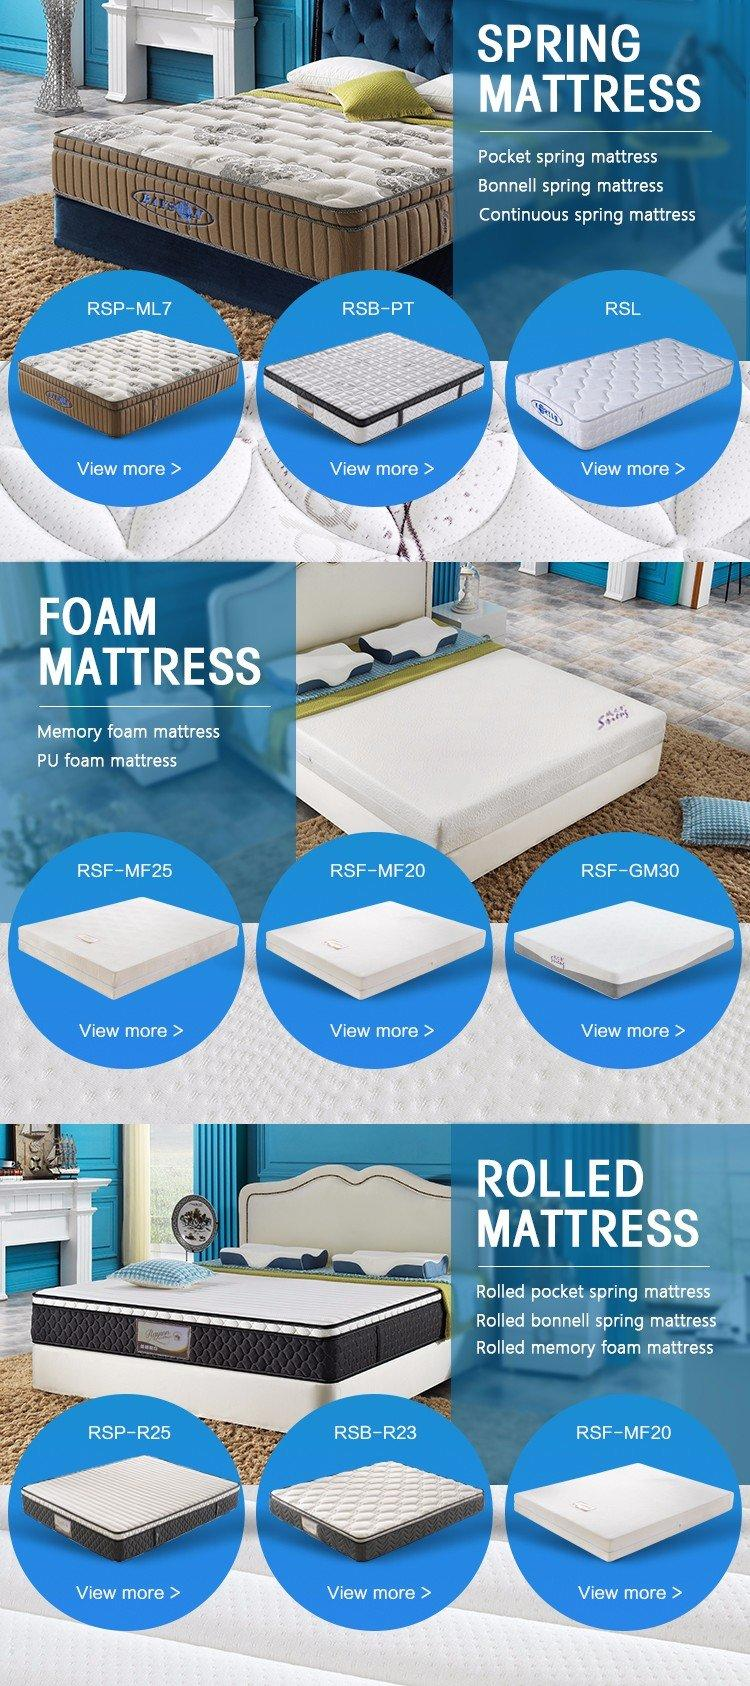 luxury bonnell spring mattress my making easy Rayson Mattress Brand company